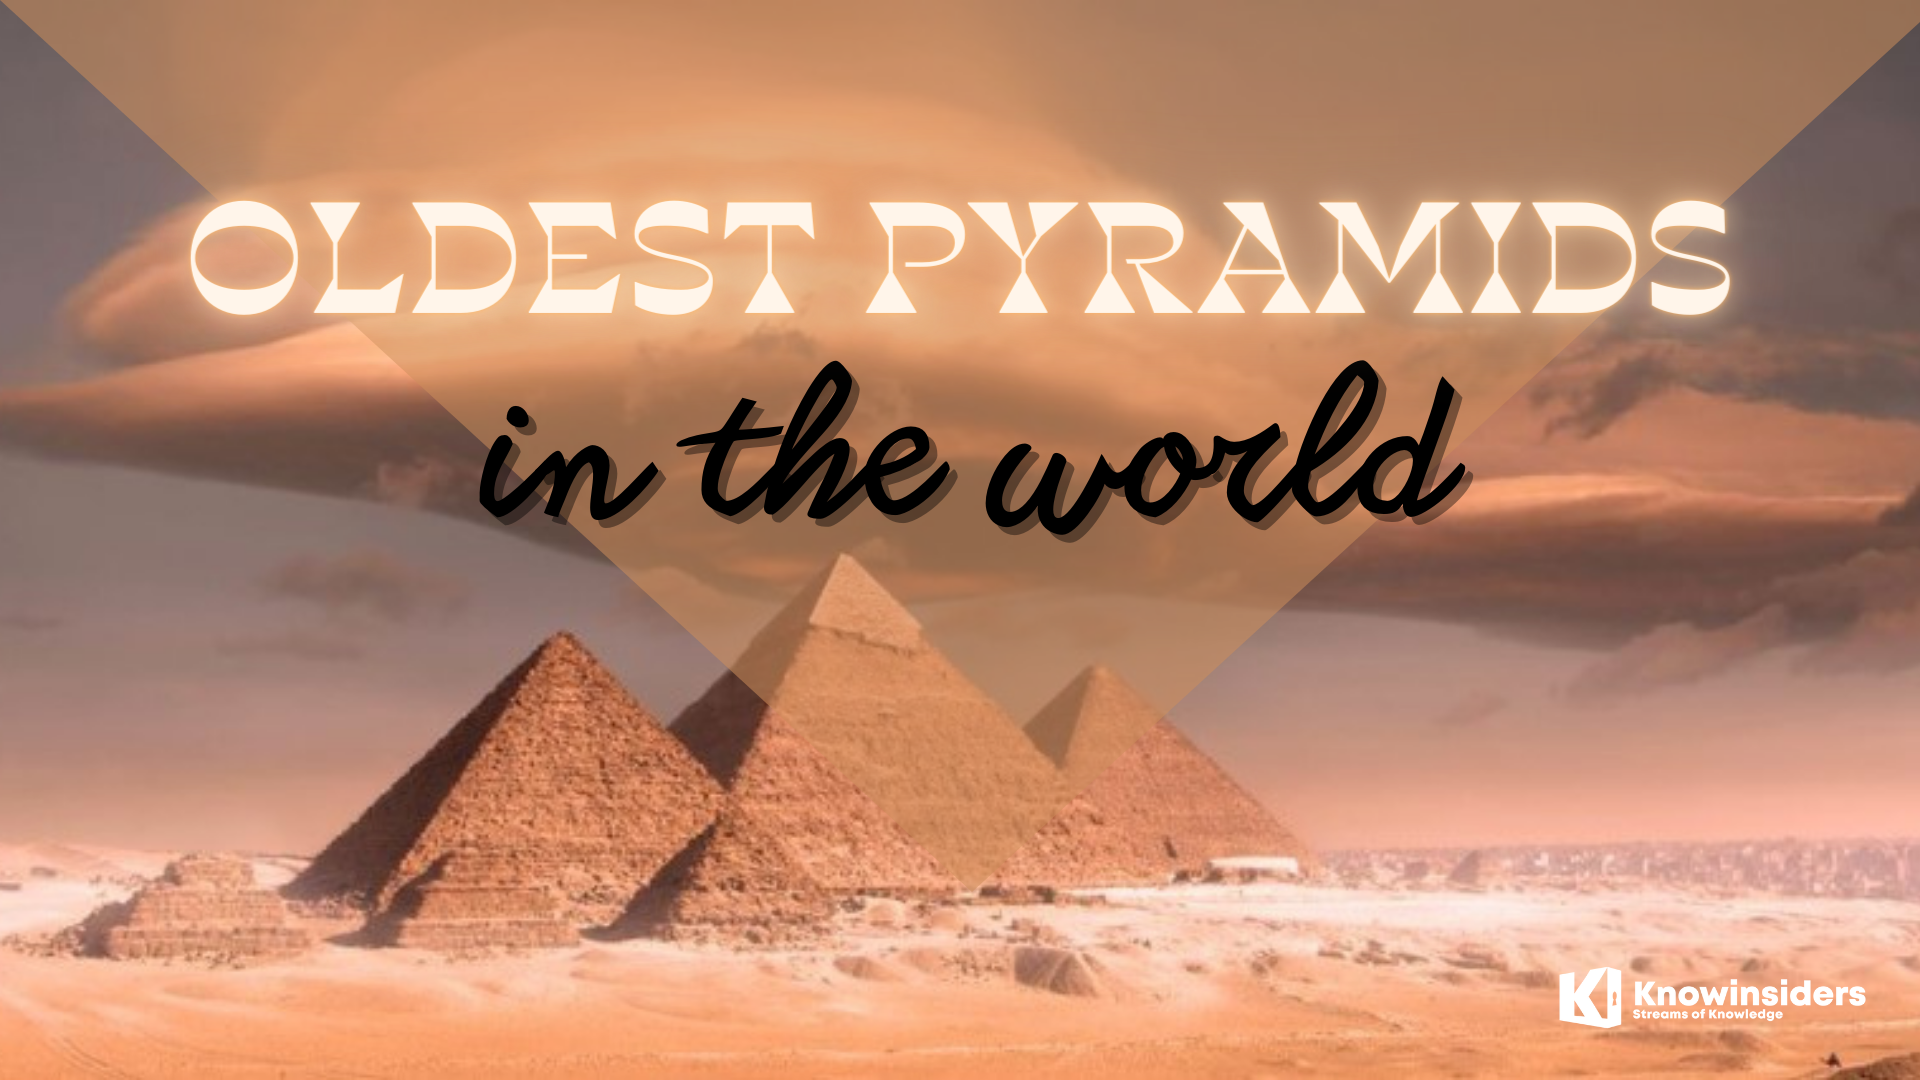 Top Oldest Pyramids In The World. Photo: knowinsiders.